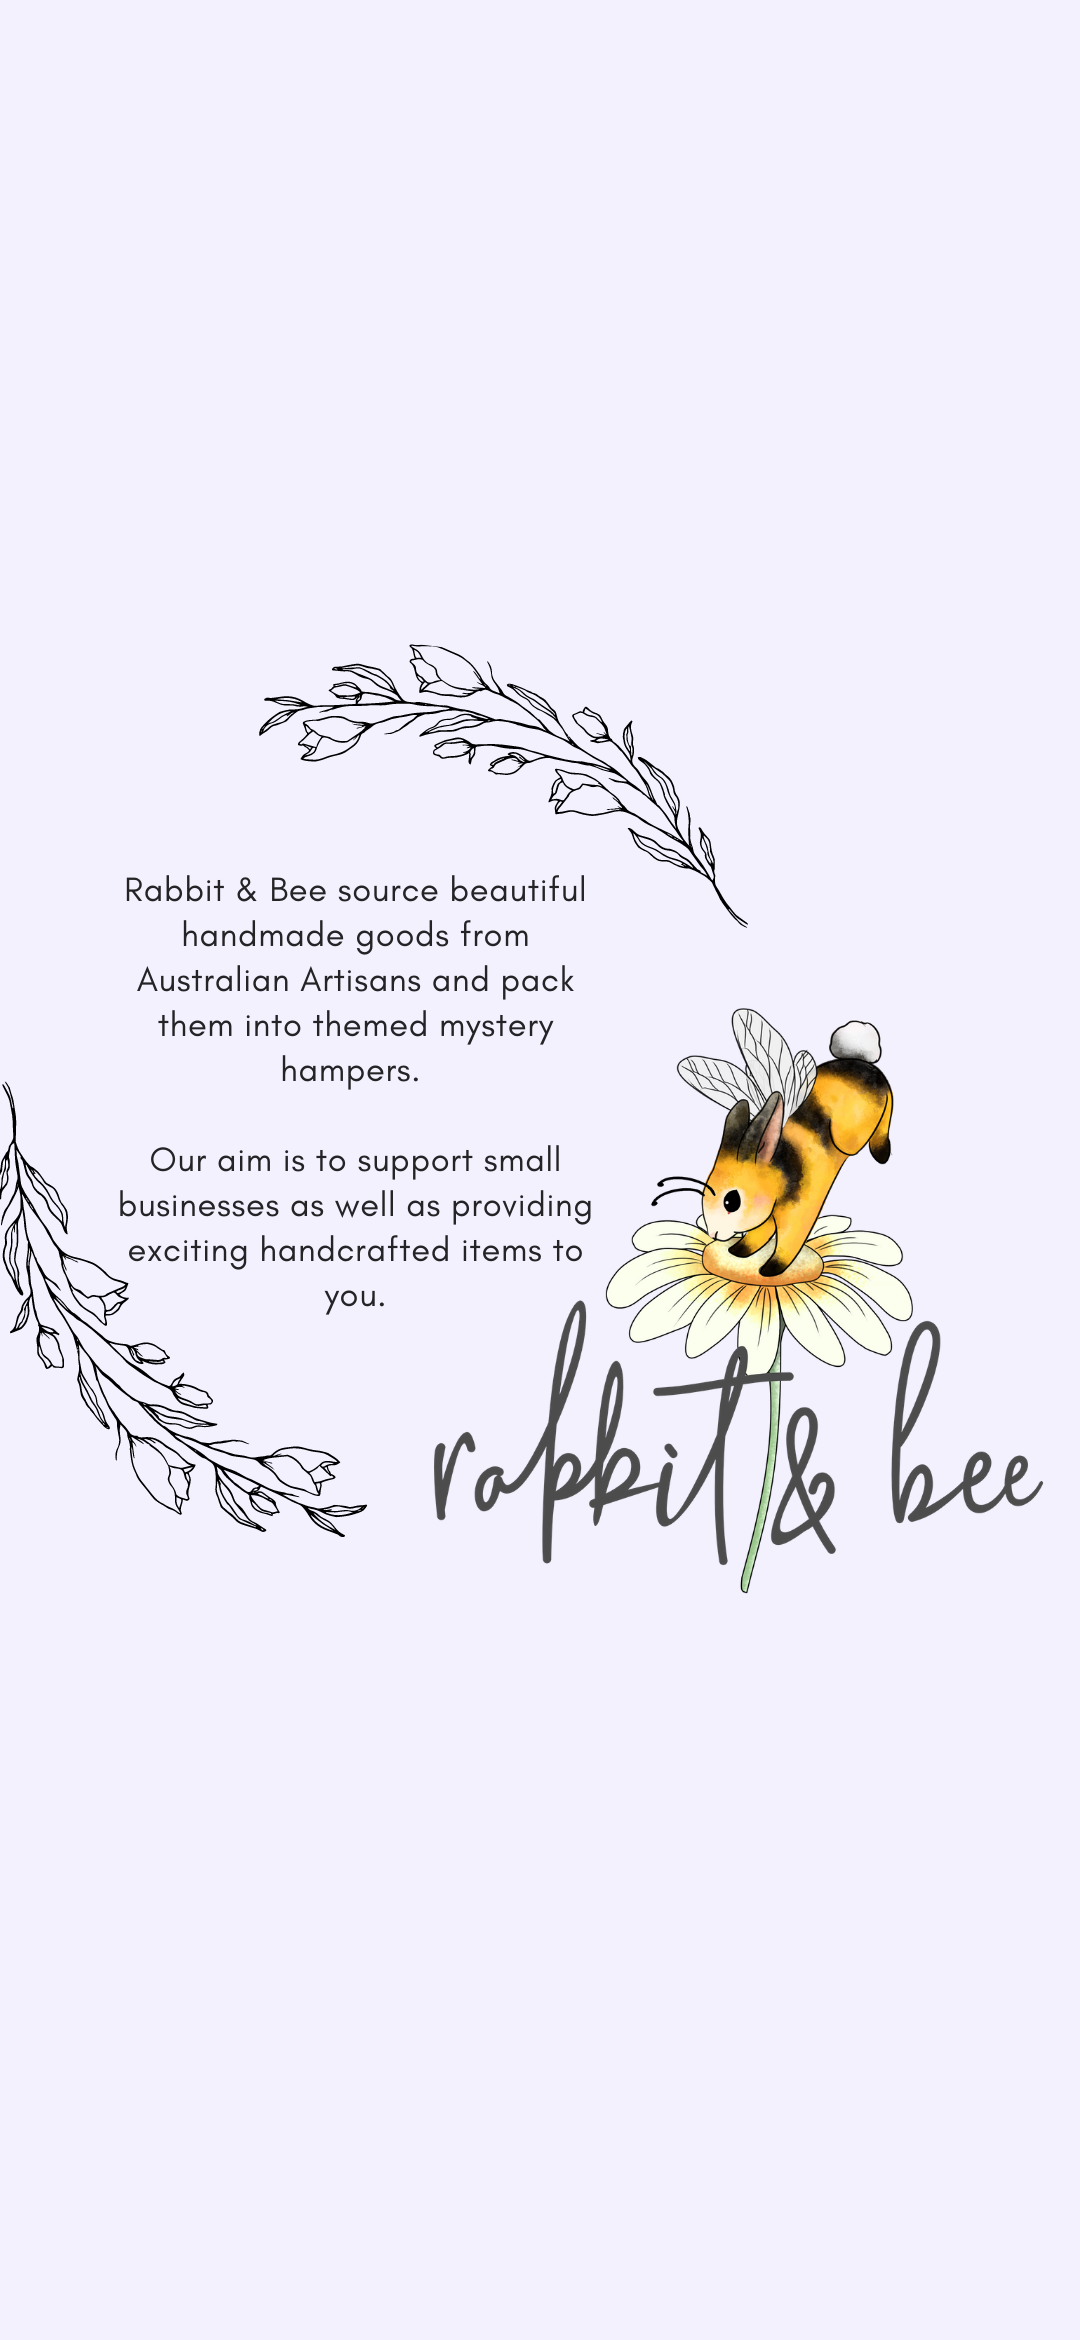 Rabbit and Bee